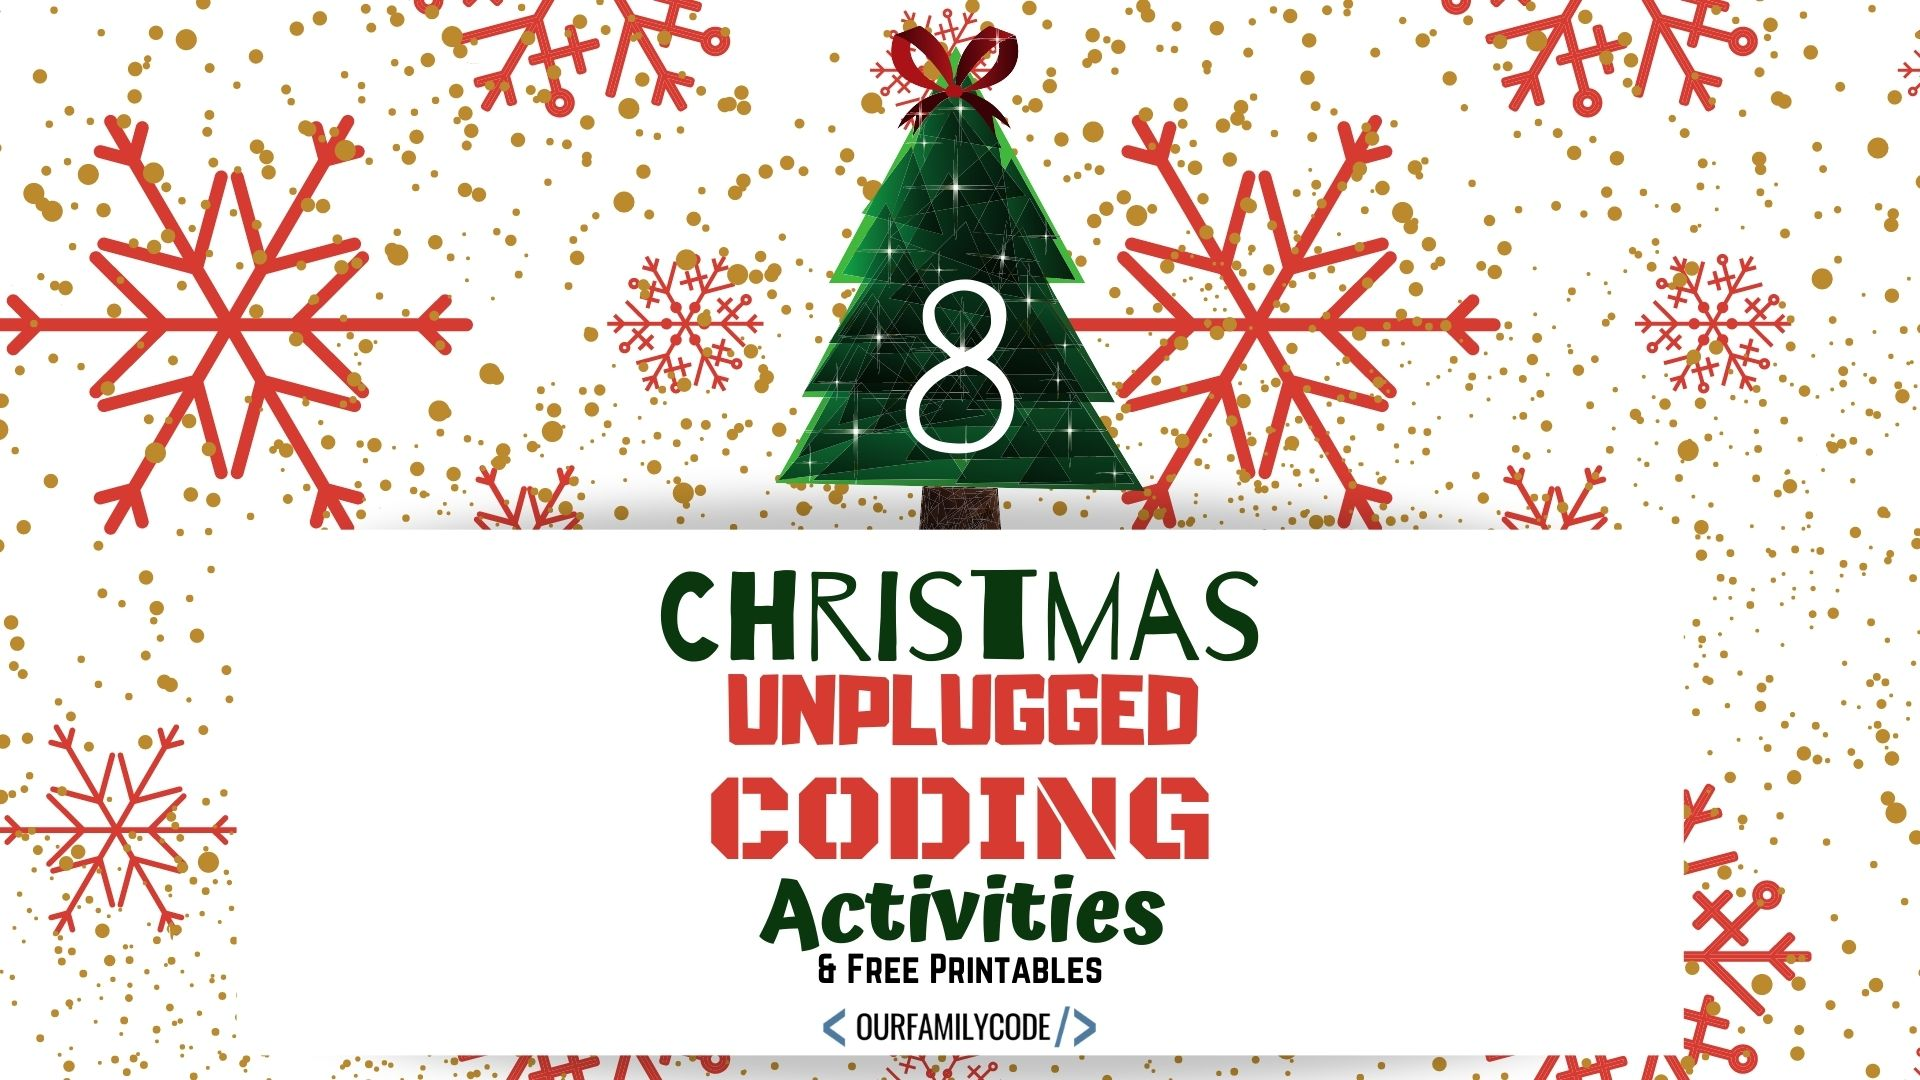 Christmas Unplugged Coding Activities for Kids | Our Family Code